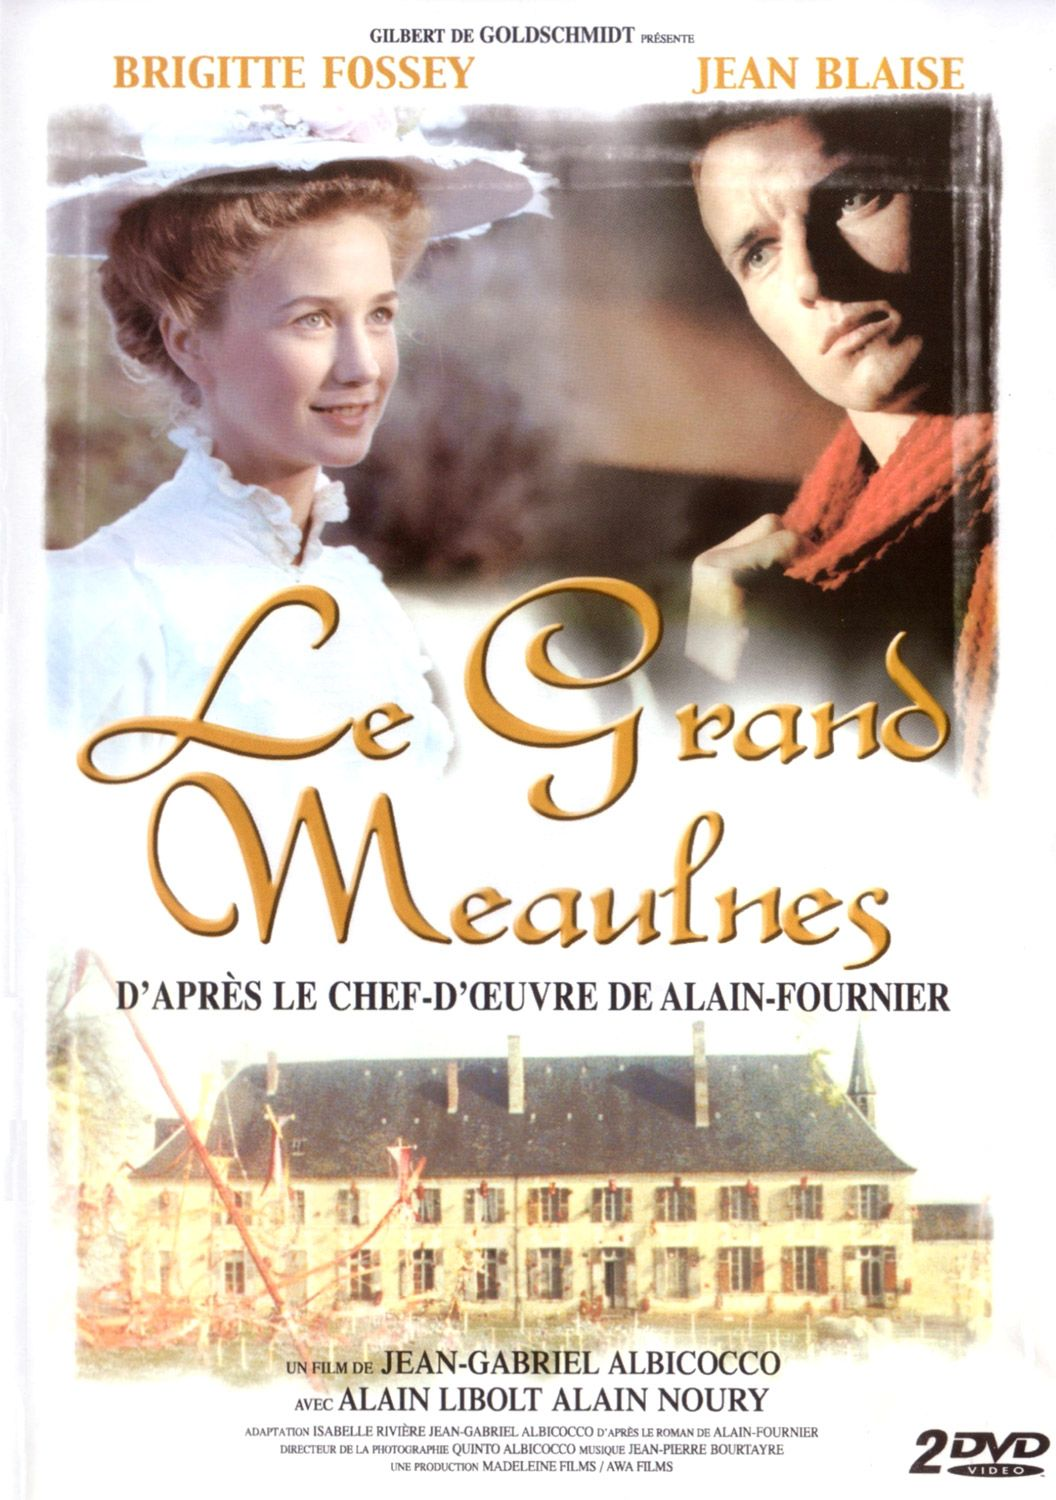 Le Grand Meaulnes, 1967, dir. J-G. Albicocco; a film about friendship, love  and the disappointments attending both